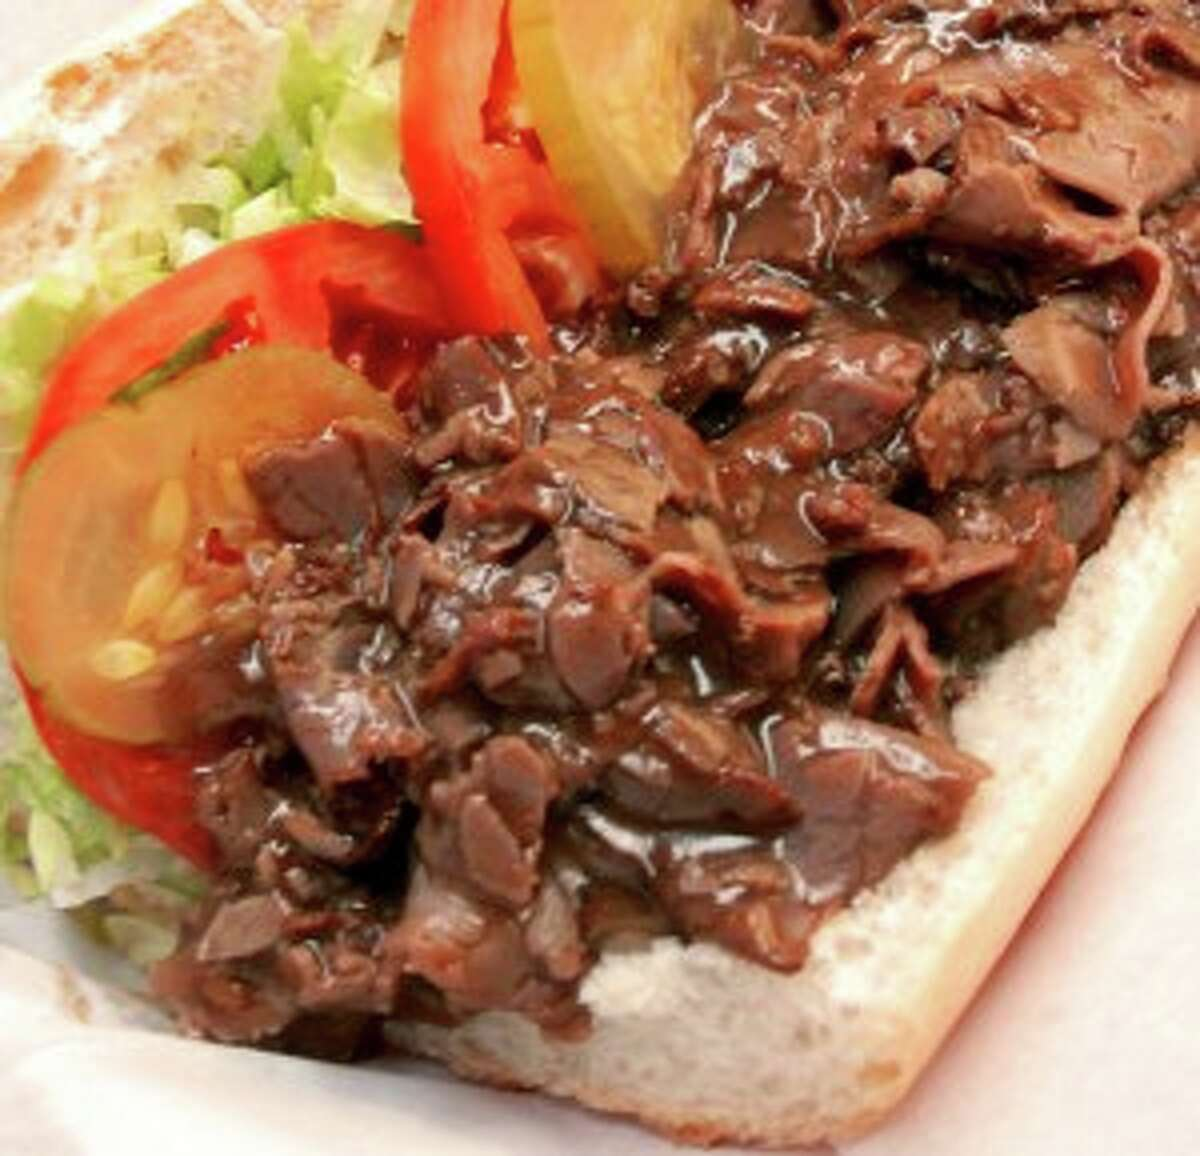 NOLA Poboys, a New Orleans-based fast-casual restaurant, will open its first restaurant in Houston on Feb. 17 at 1333 Old Spanish Trail. Shown: Beef debris po'boy. The second restaurant, at 300 W. Bay Area Blvd., is now open in Webster.